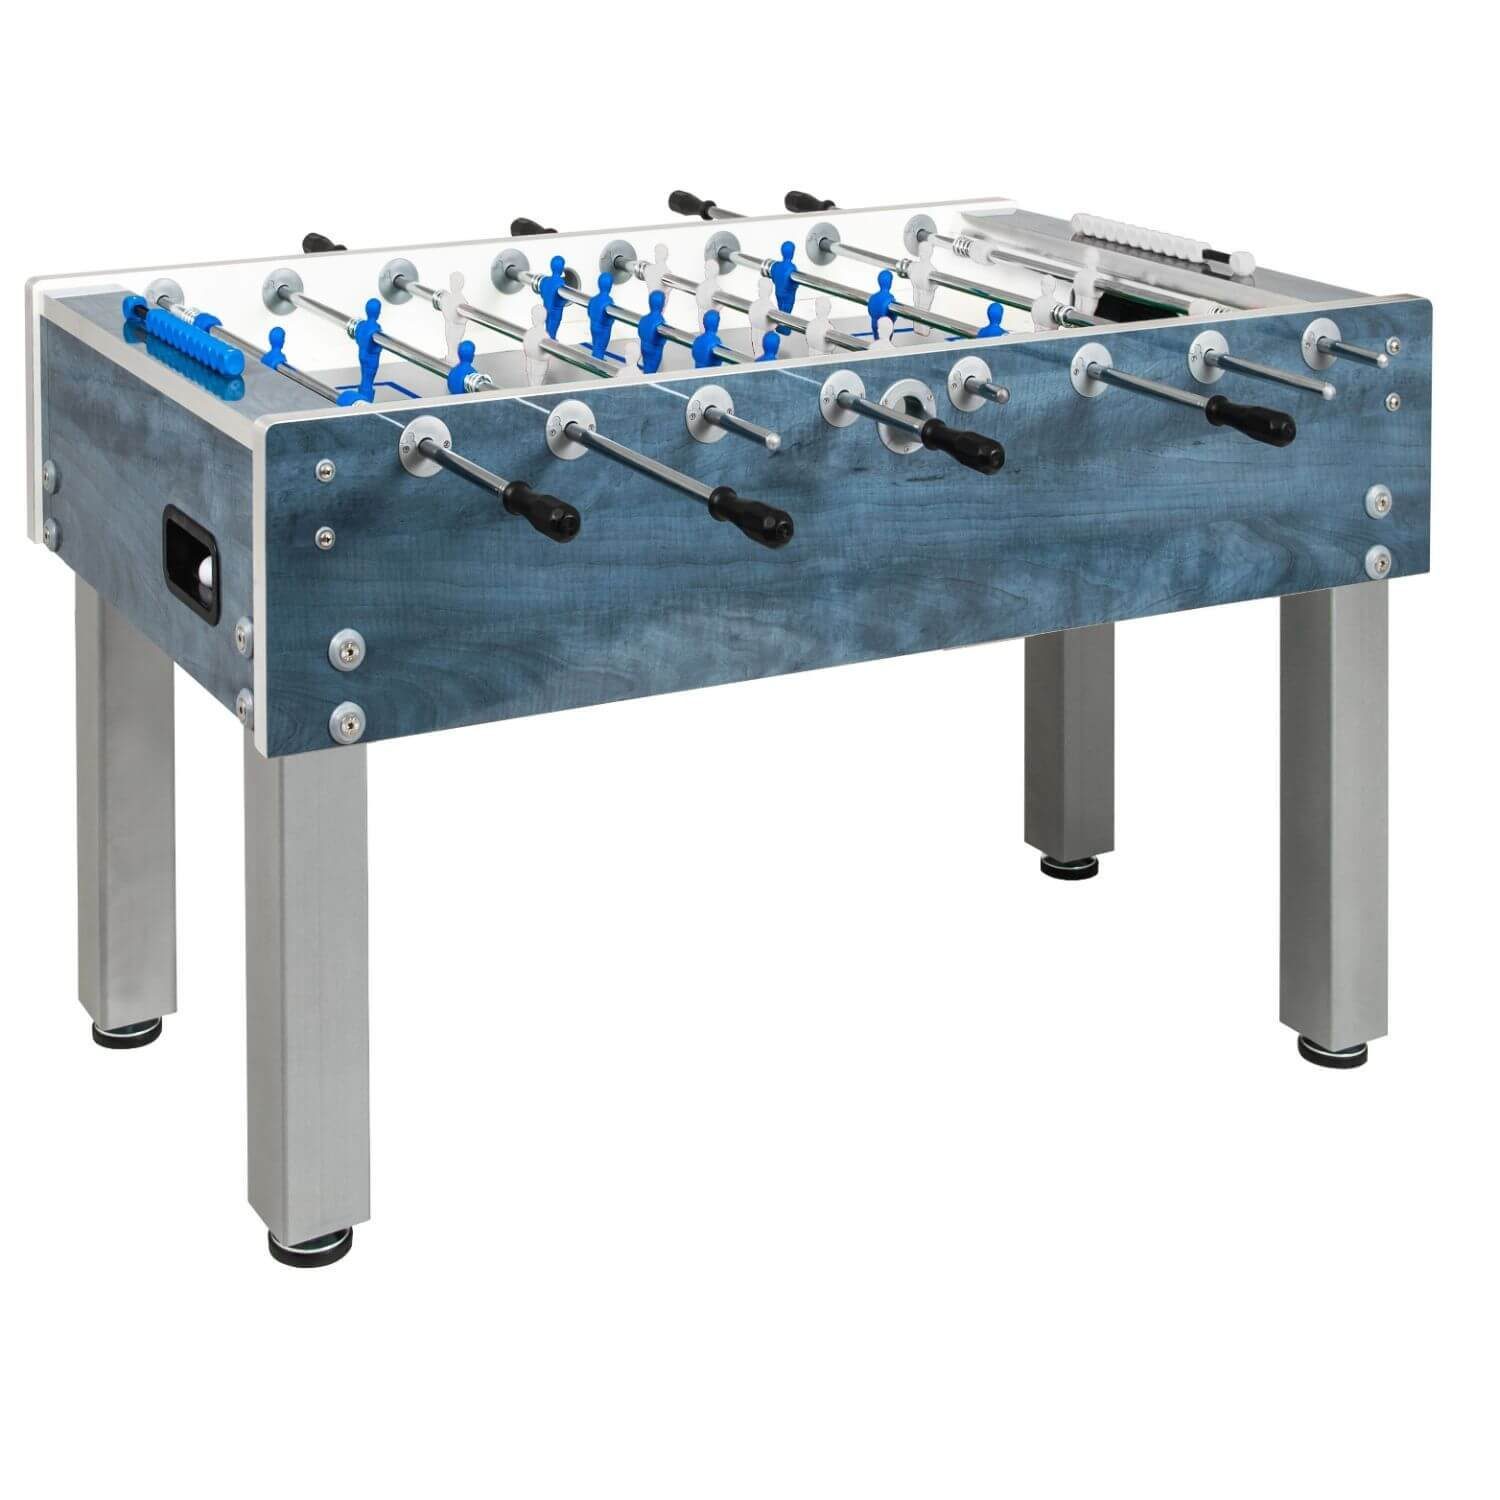 Garlando G-500 Weatherproof Blue Outdoor Foosball Table - Gaming Blaze